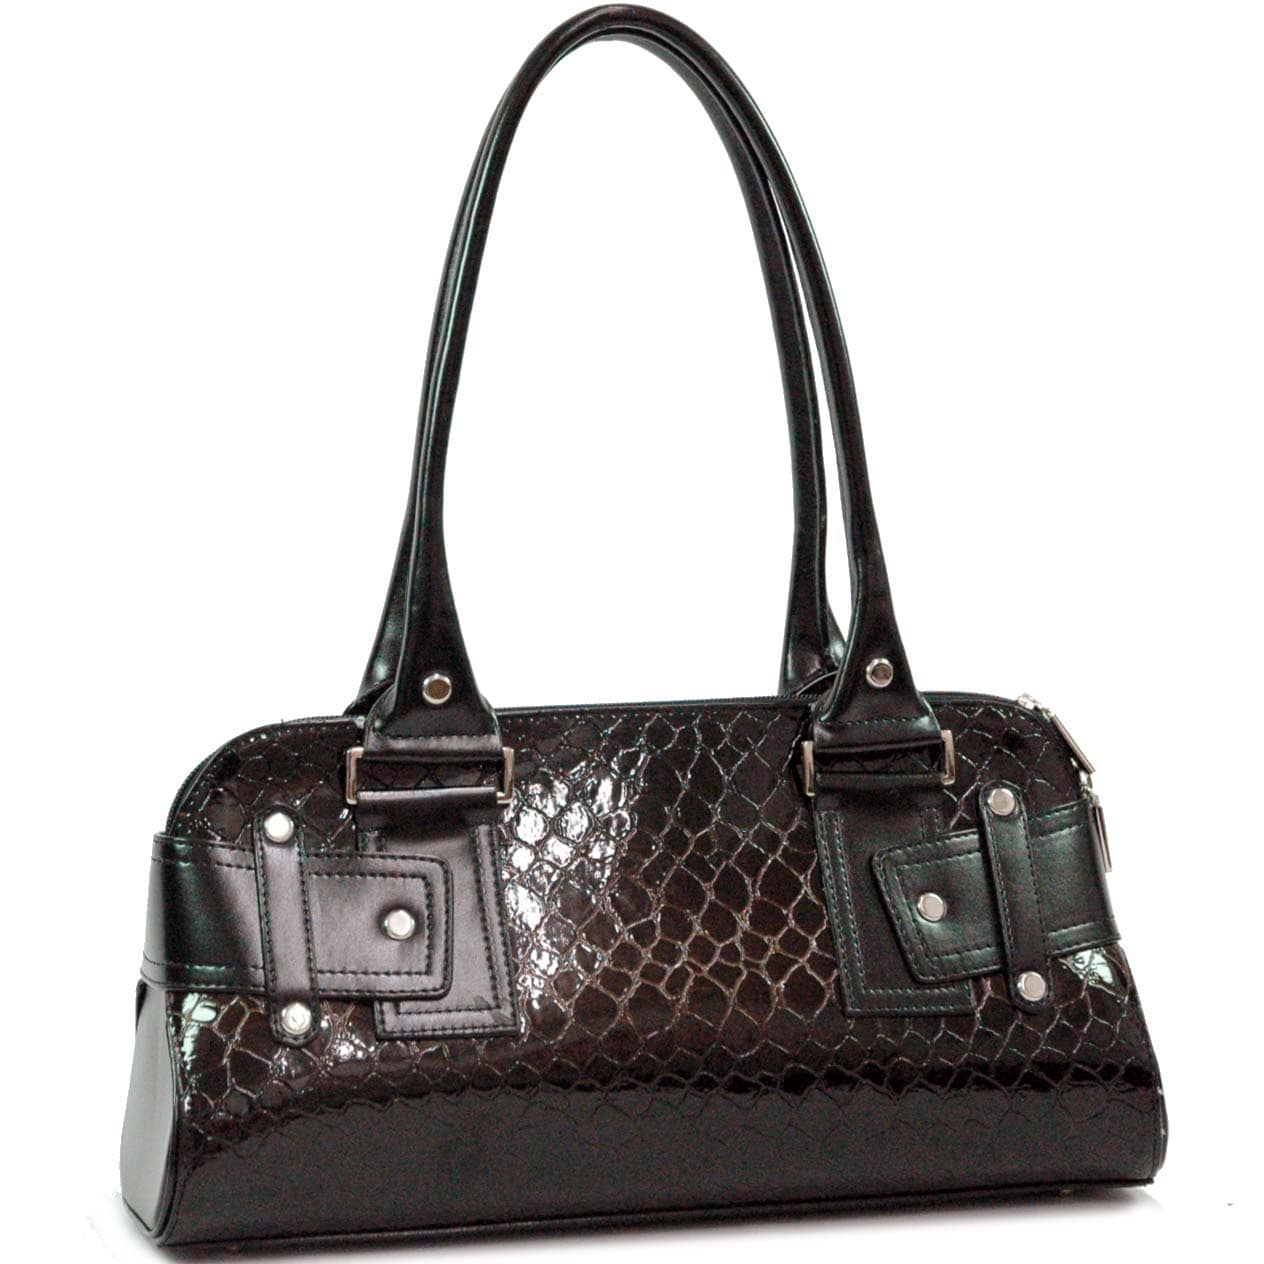 Dasein Snakeskin Embossed Patent Faux Leather Zipped Shoulder Bag